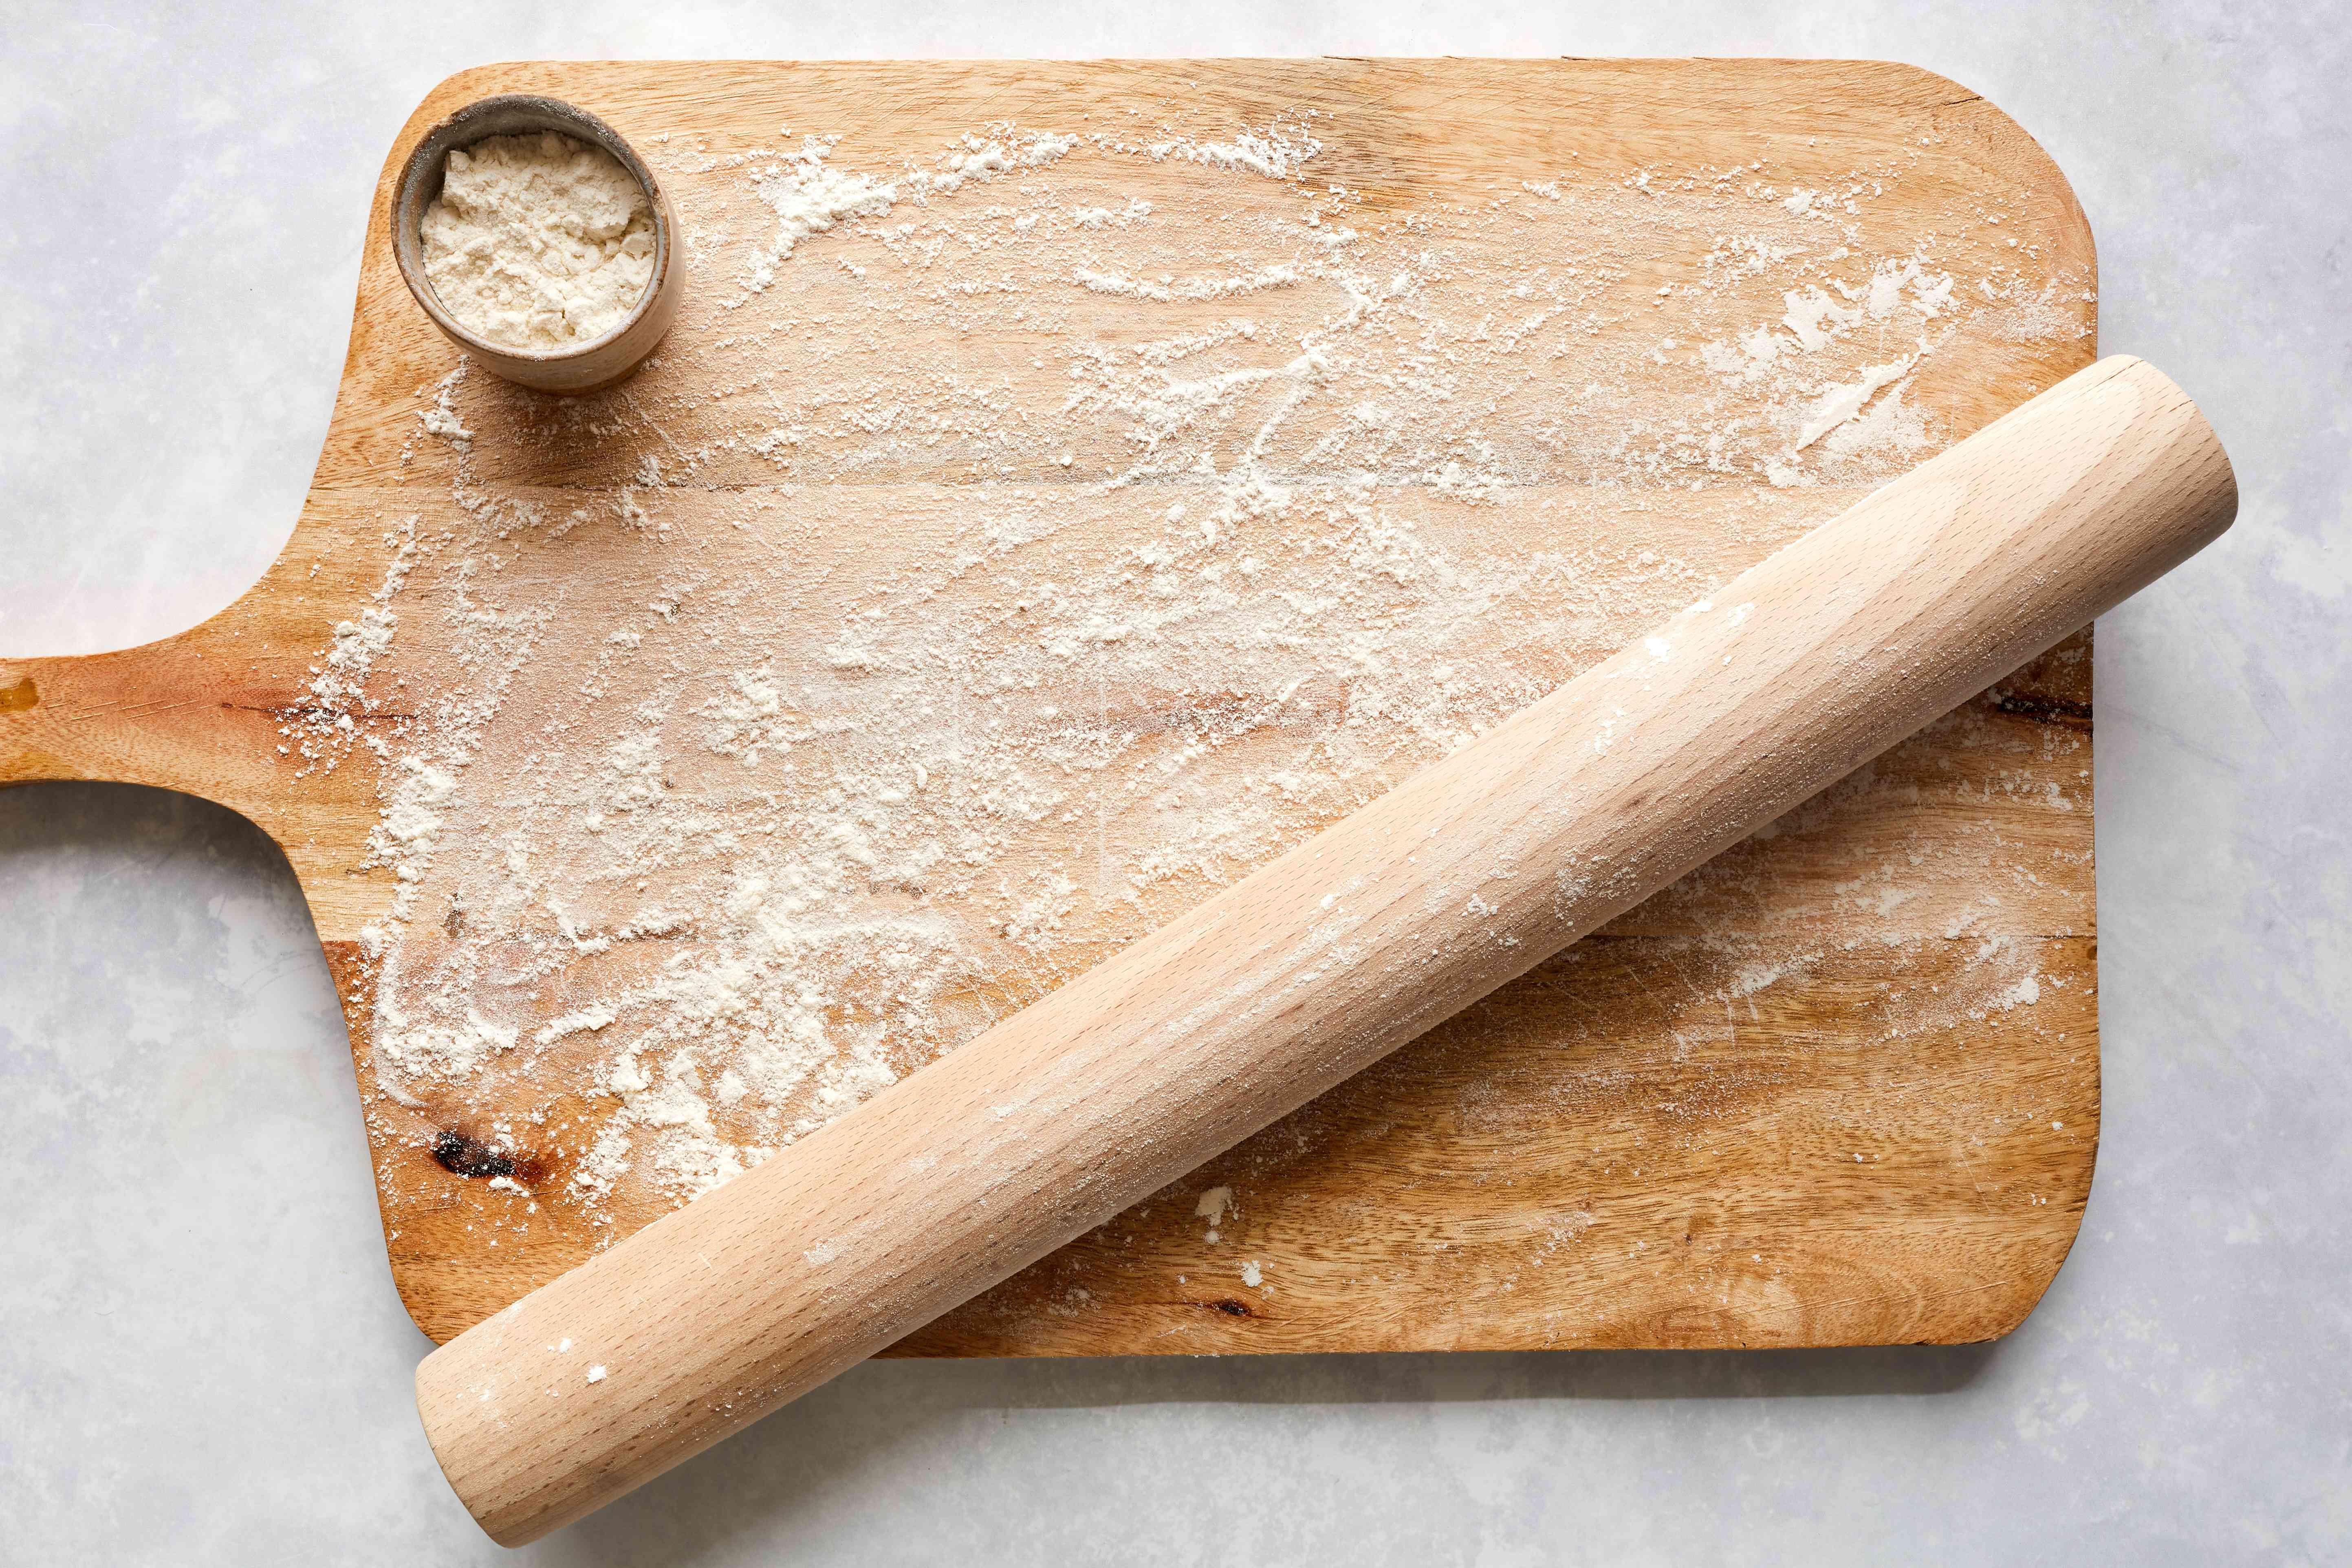 Floured wood board and wooden rolling pin